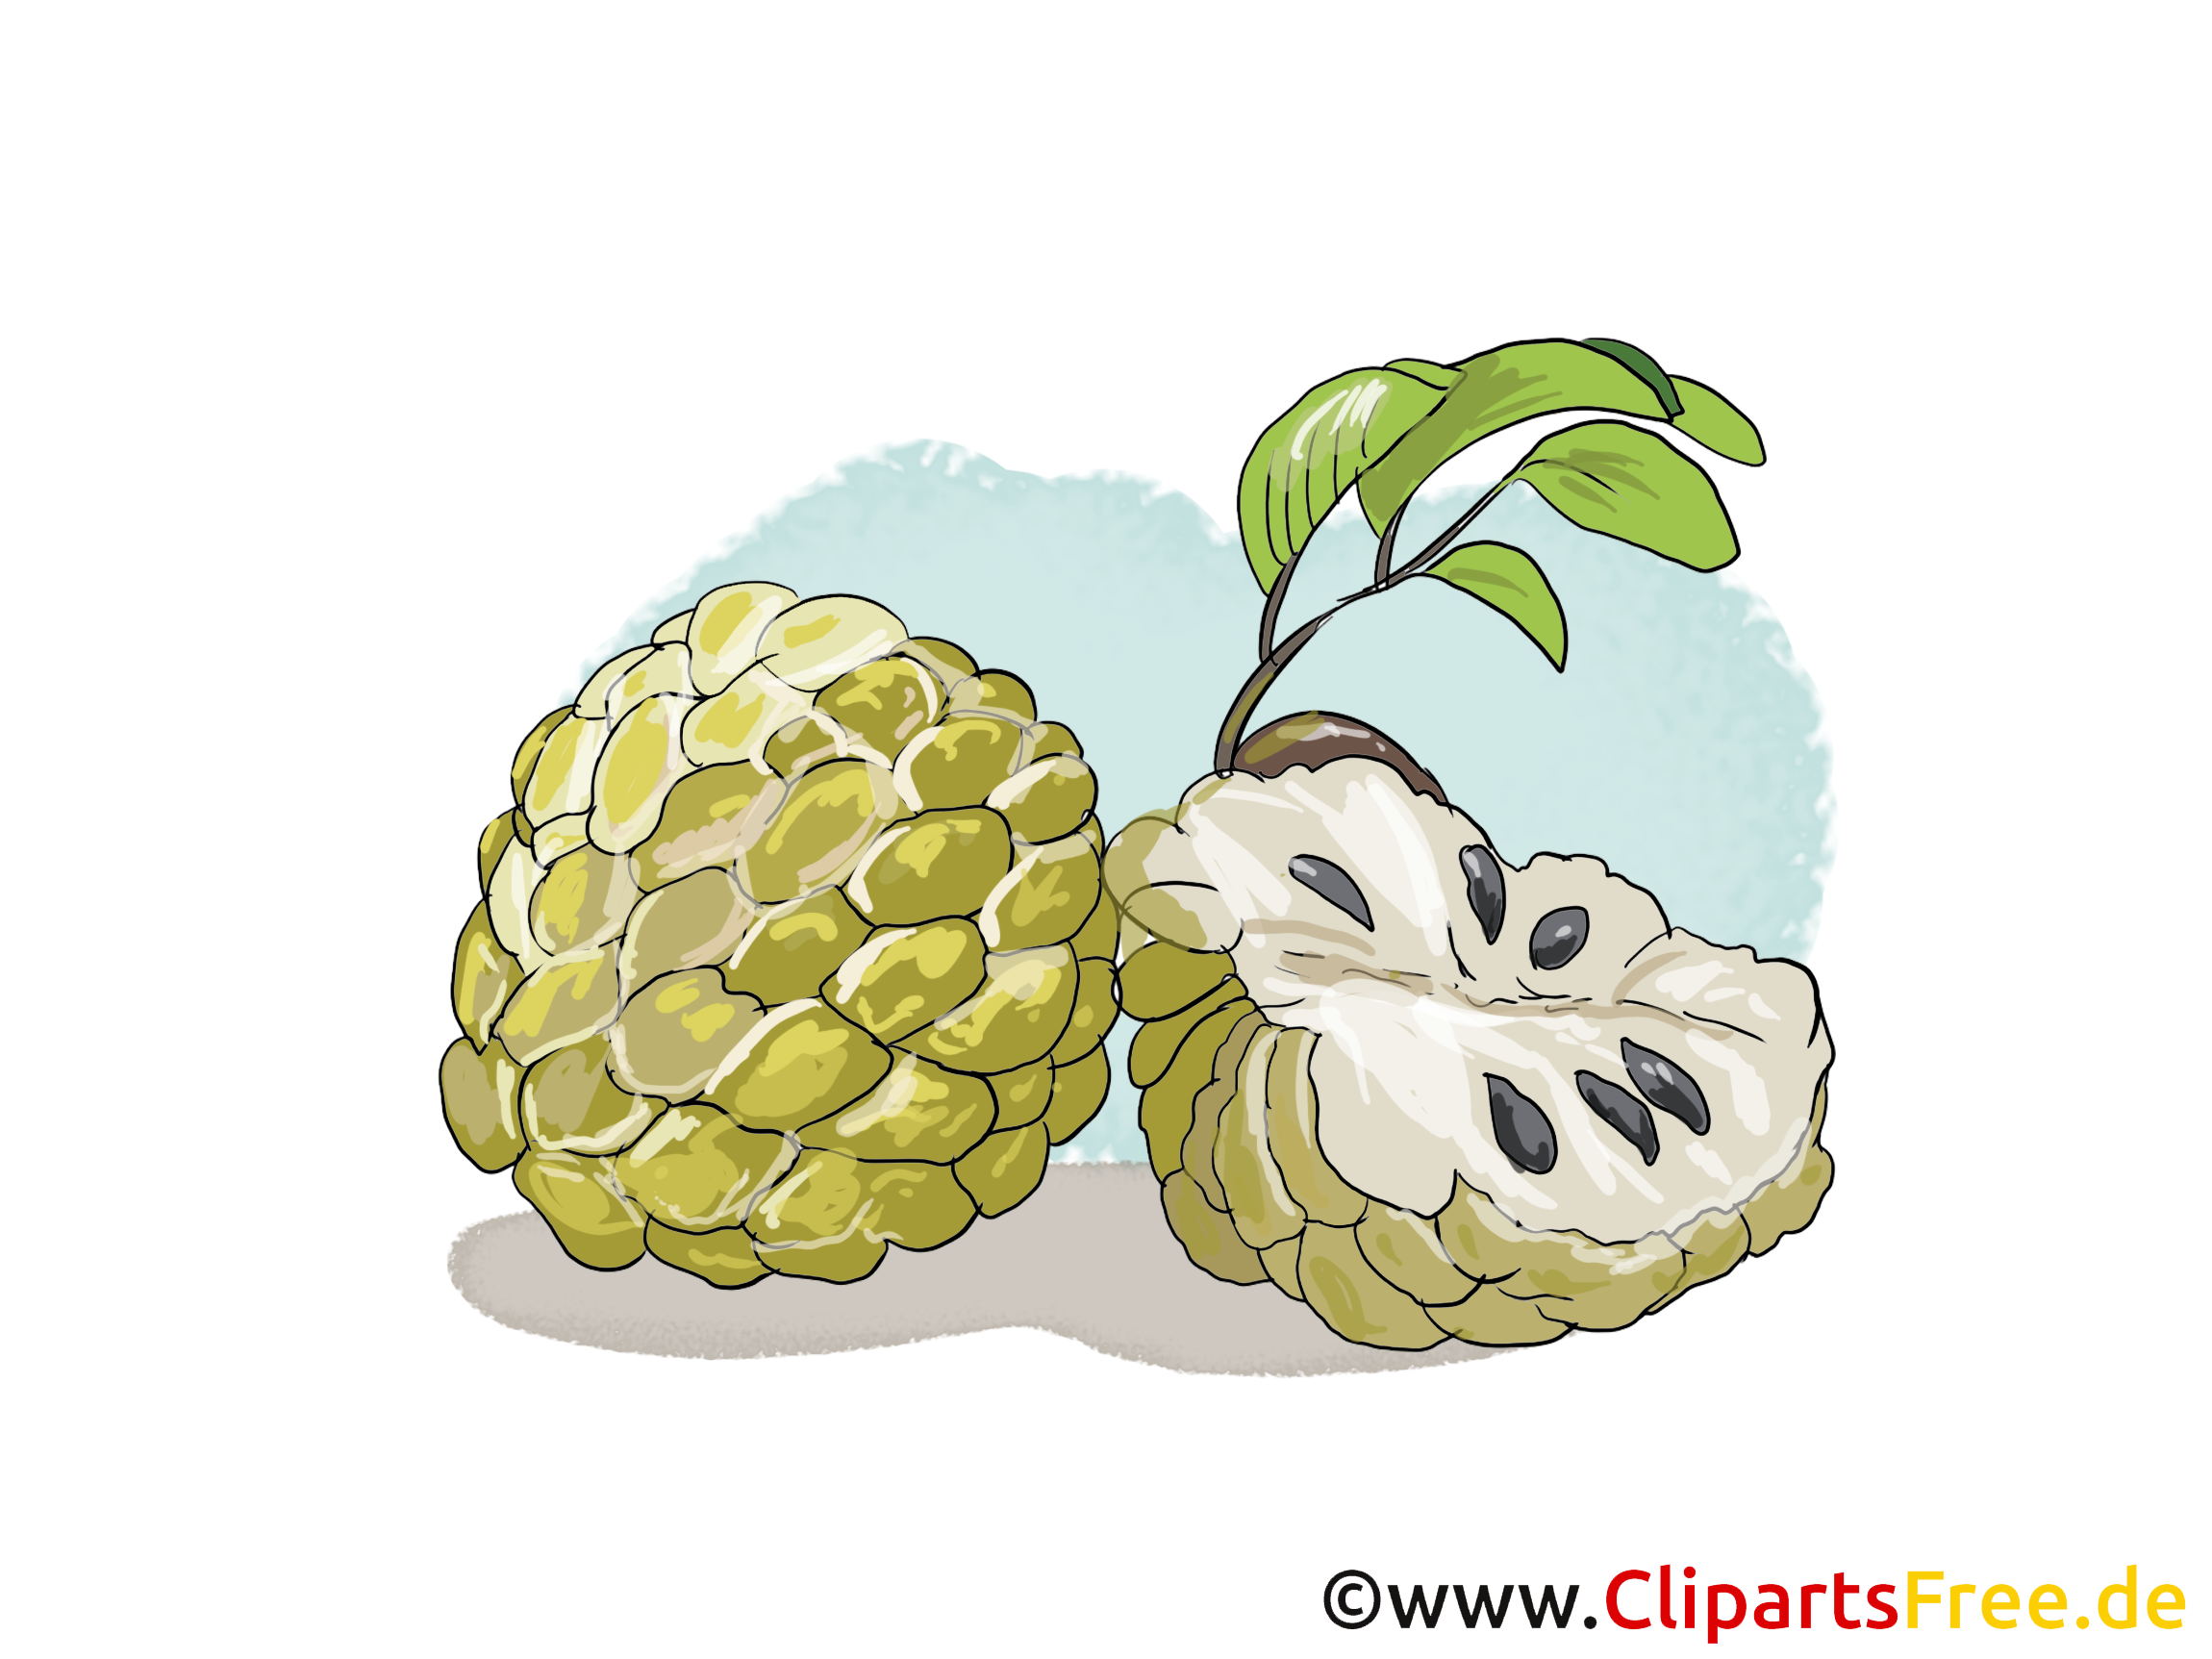 Cherimoya images - Fruits dessins gratuits